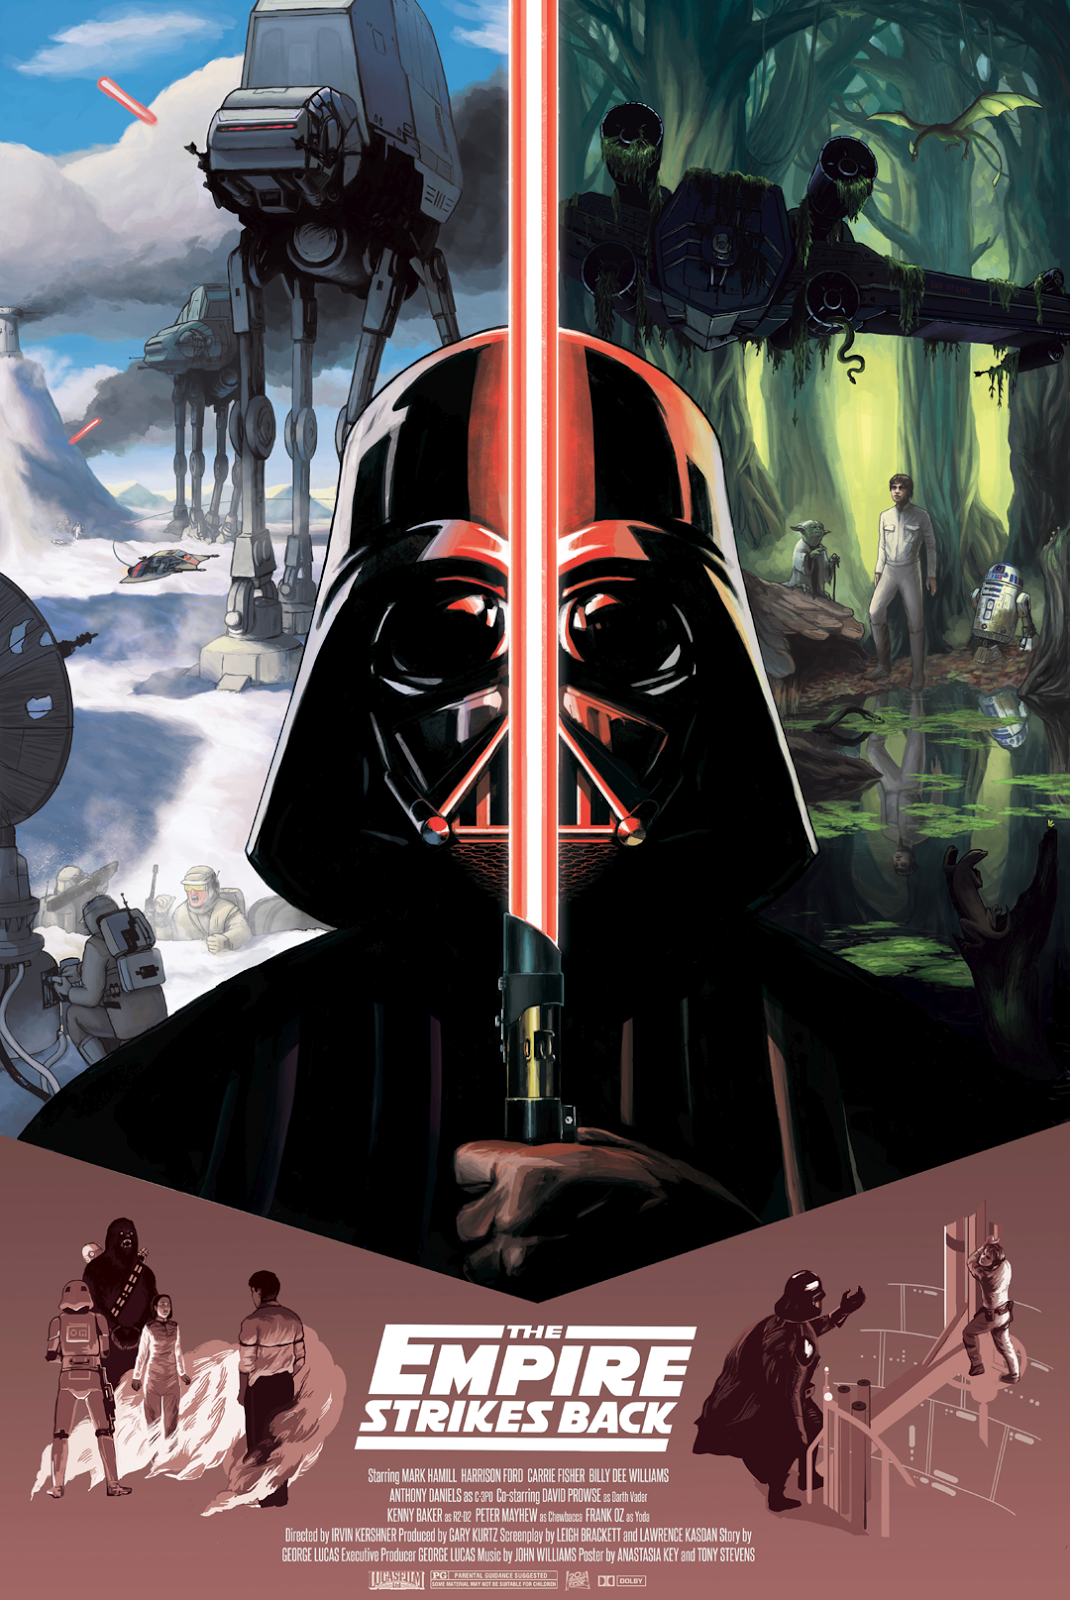 Cool Art Star Wars Original Trilogy By Anastasia Key Star Wars Movies Posters Star Wars Poster Star Wars Images